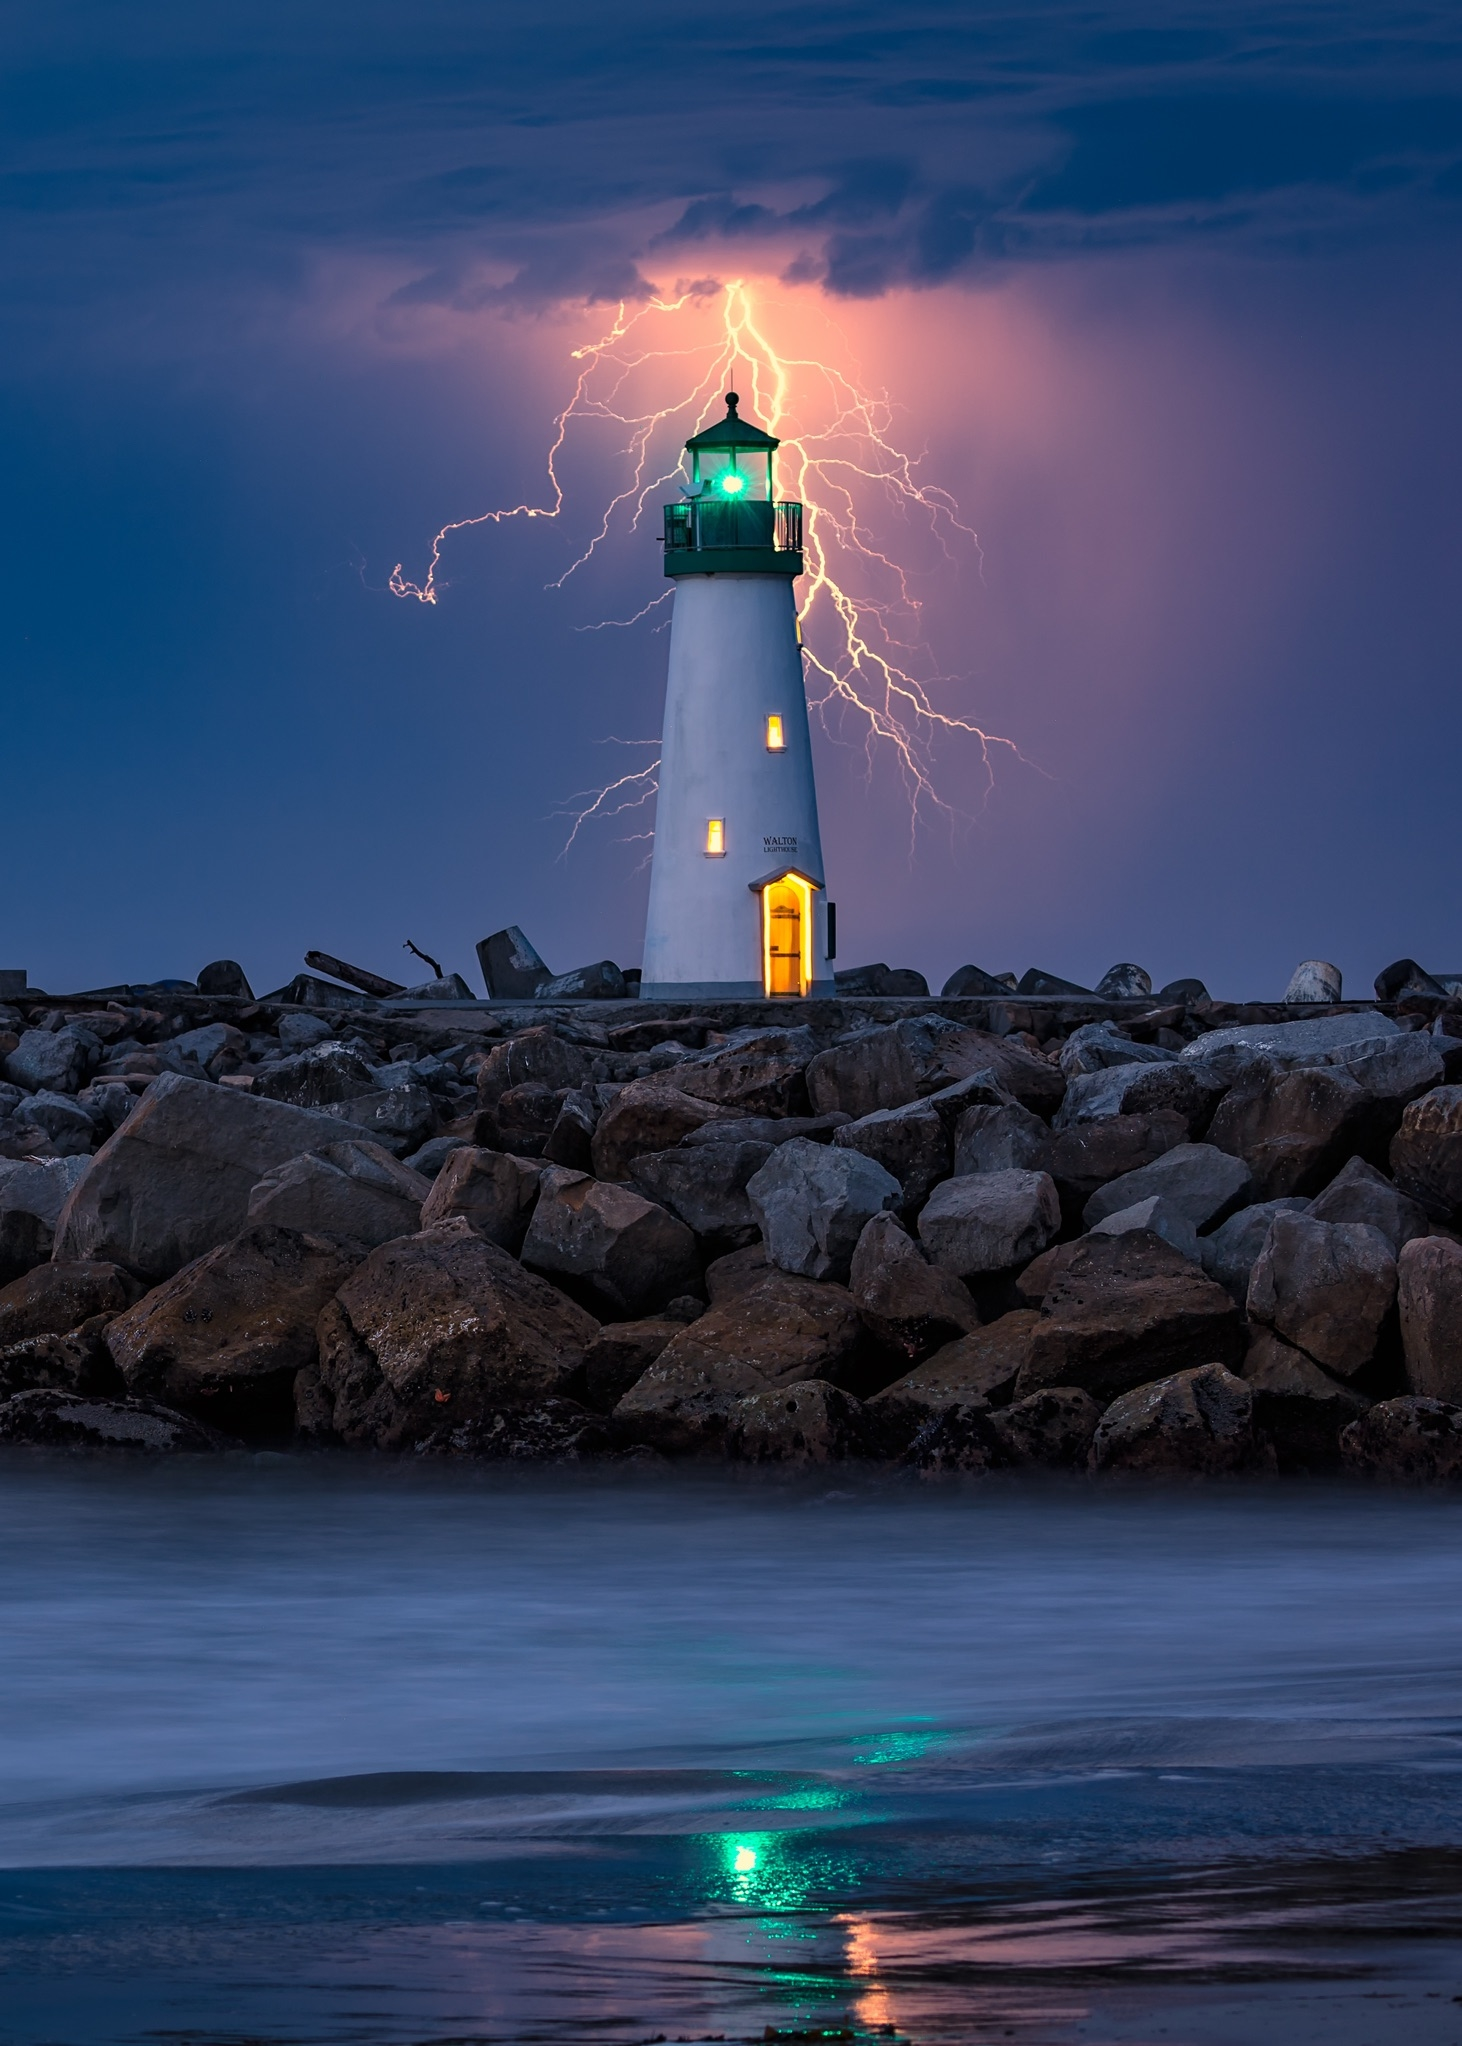 Lightning flashes straight down leading towards the shining green light of the Walton Lighthouse at the Santa Cruz Harbor.